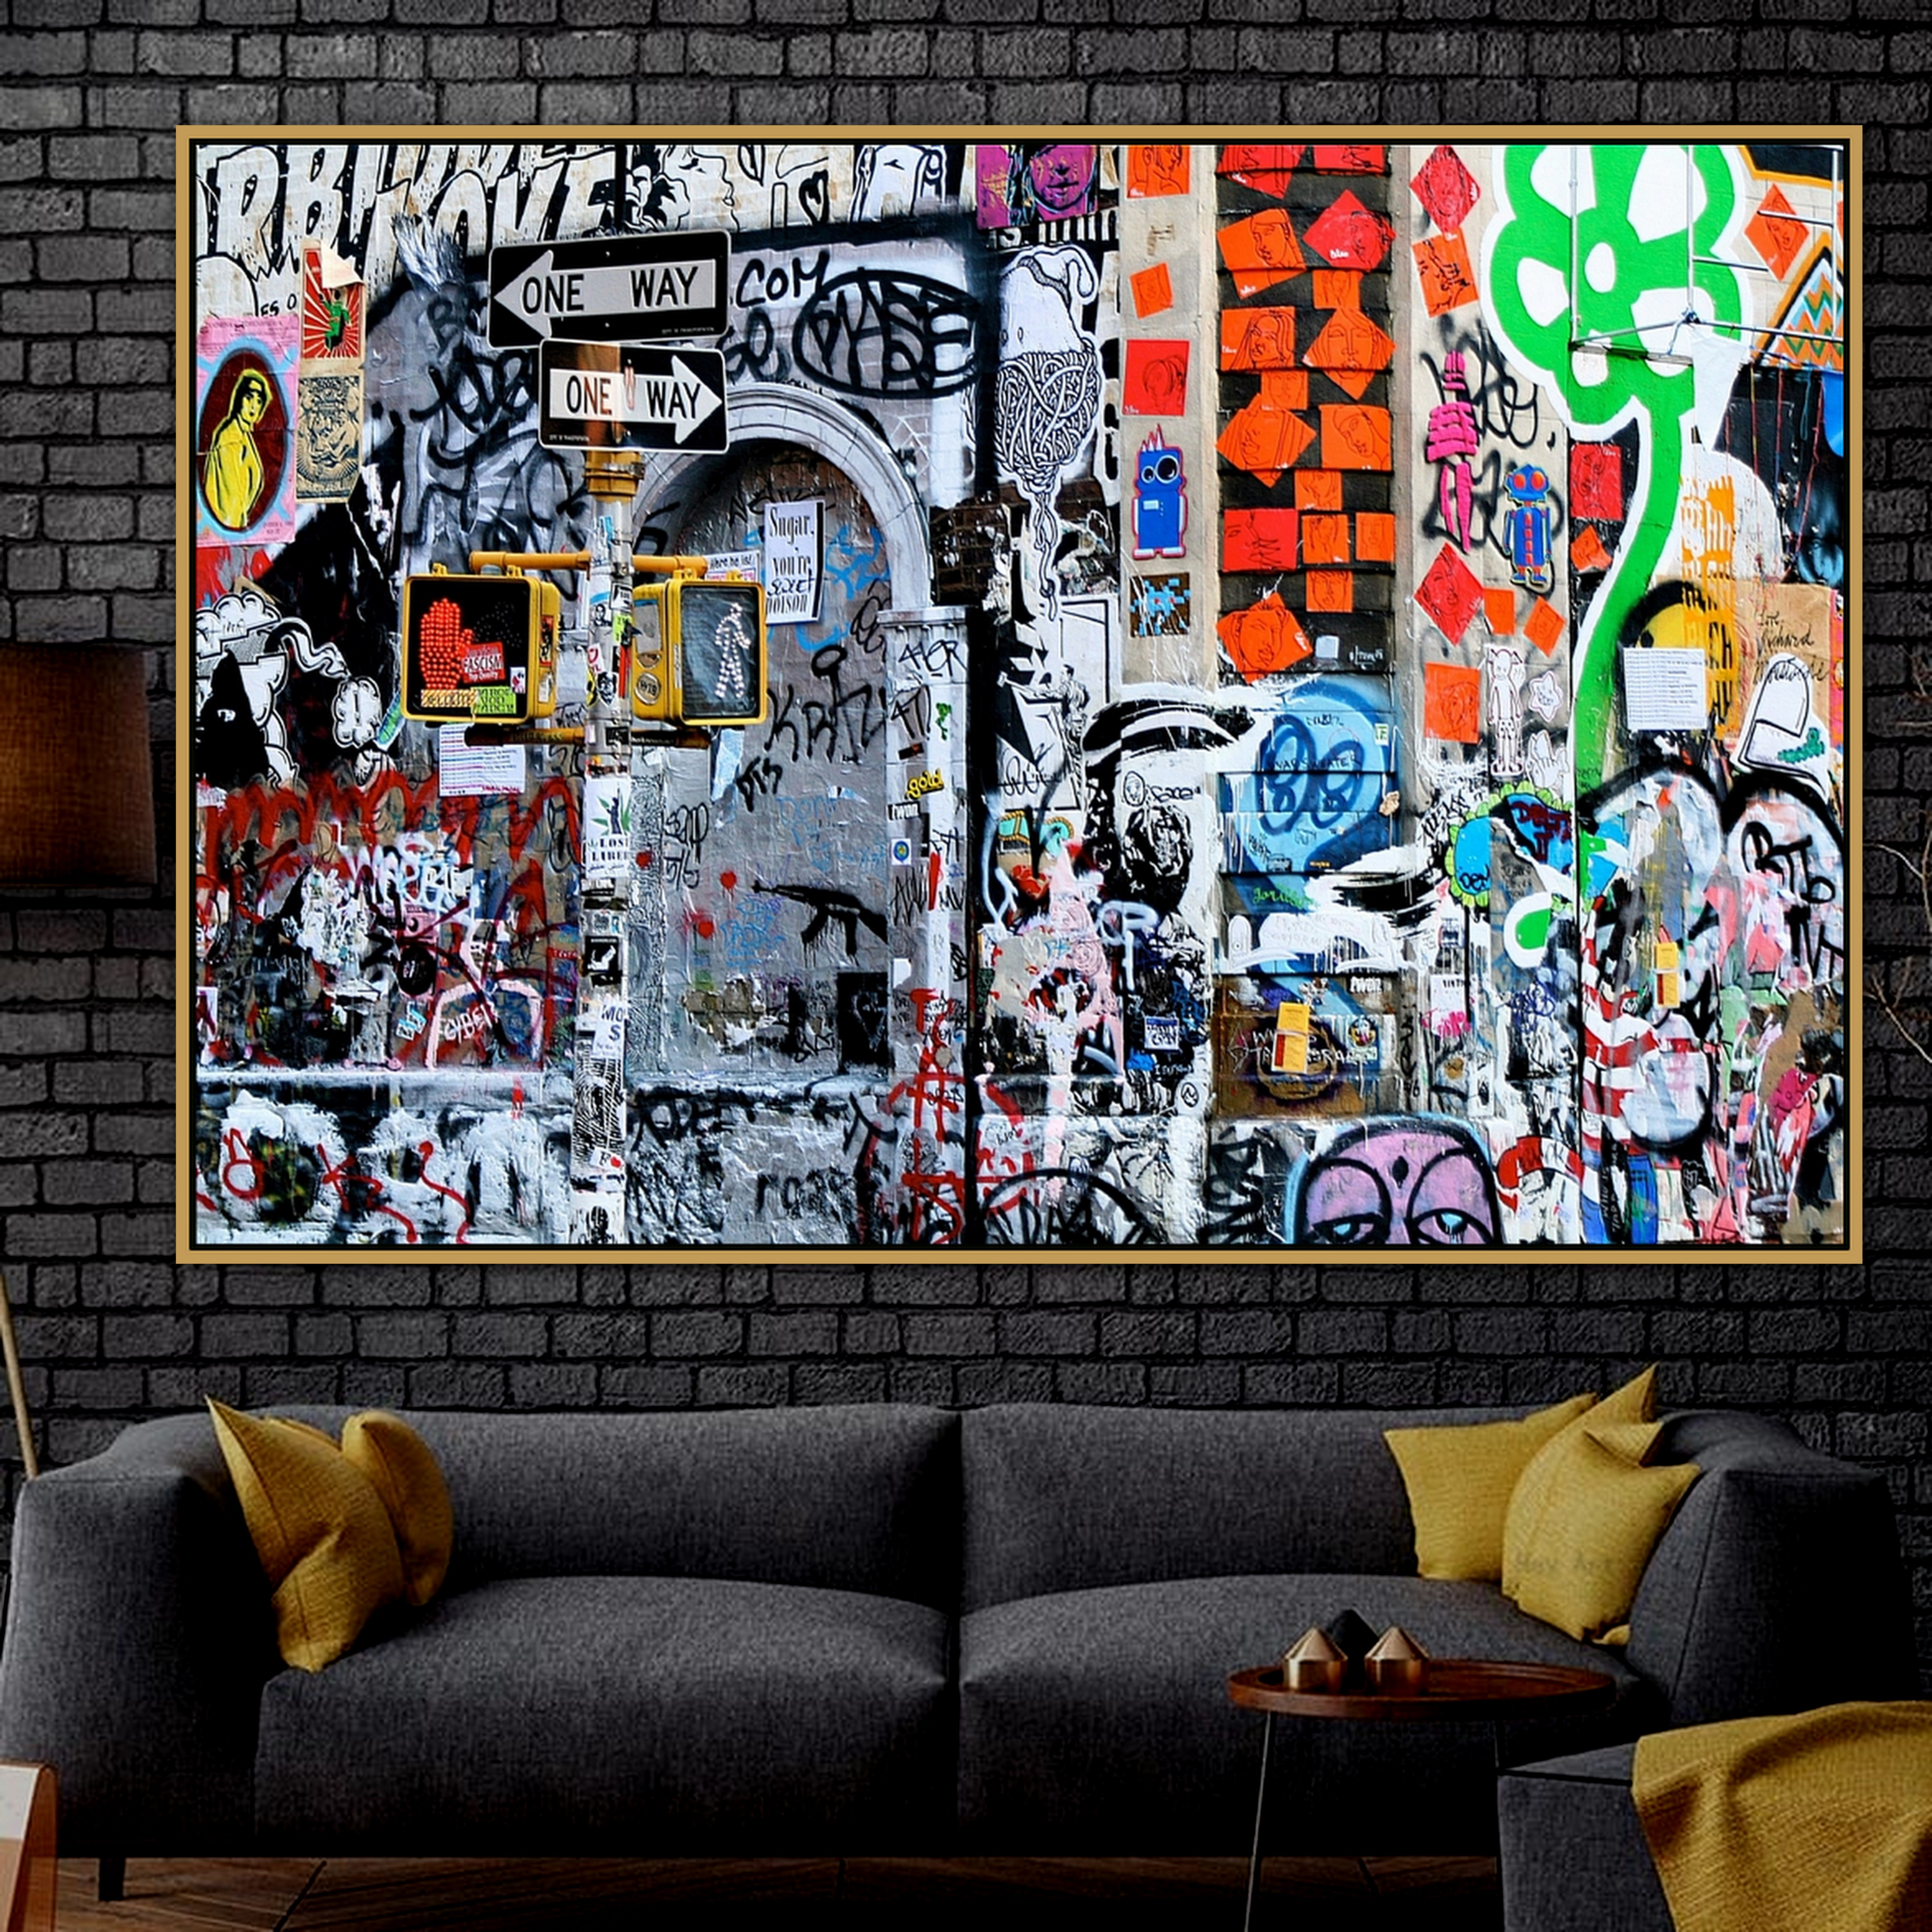 Abstract Urban Street Art Graffiti Wall Art Poster Wall Photo Pictures Wall Art Living Room Wall Decor Painting Canvas Print Painting Calligraphy Aliexpress